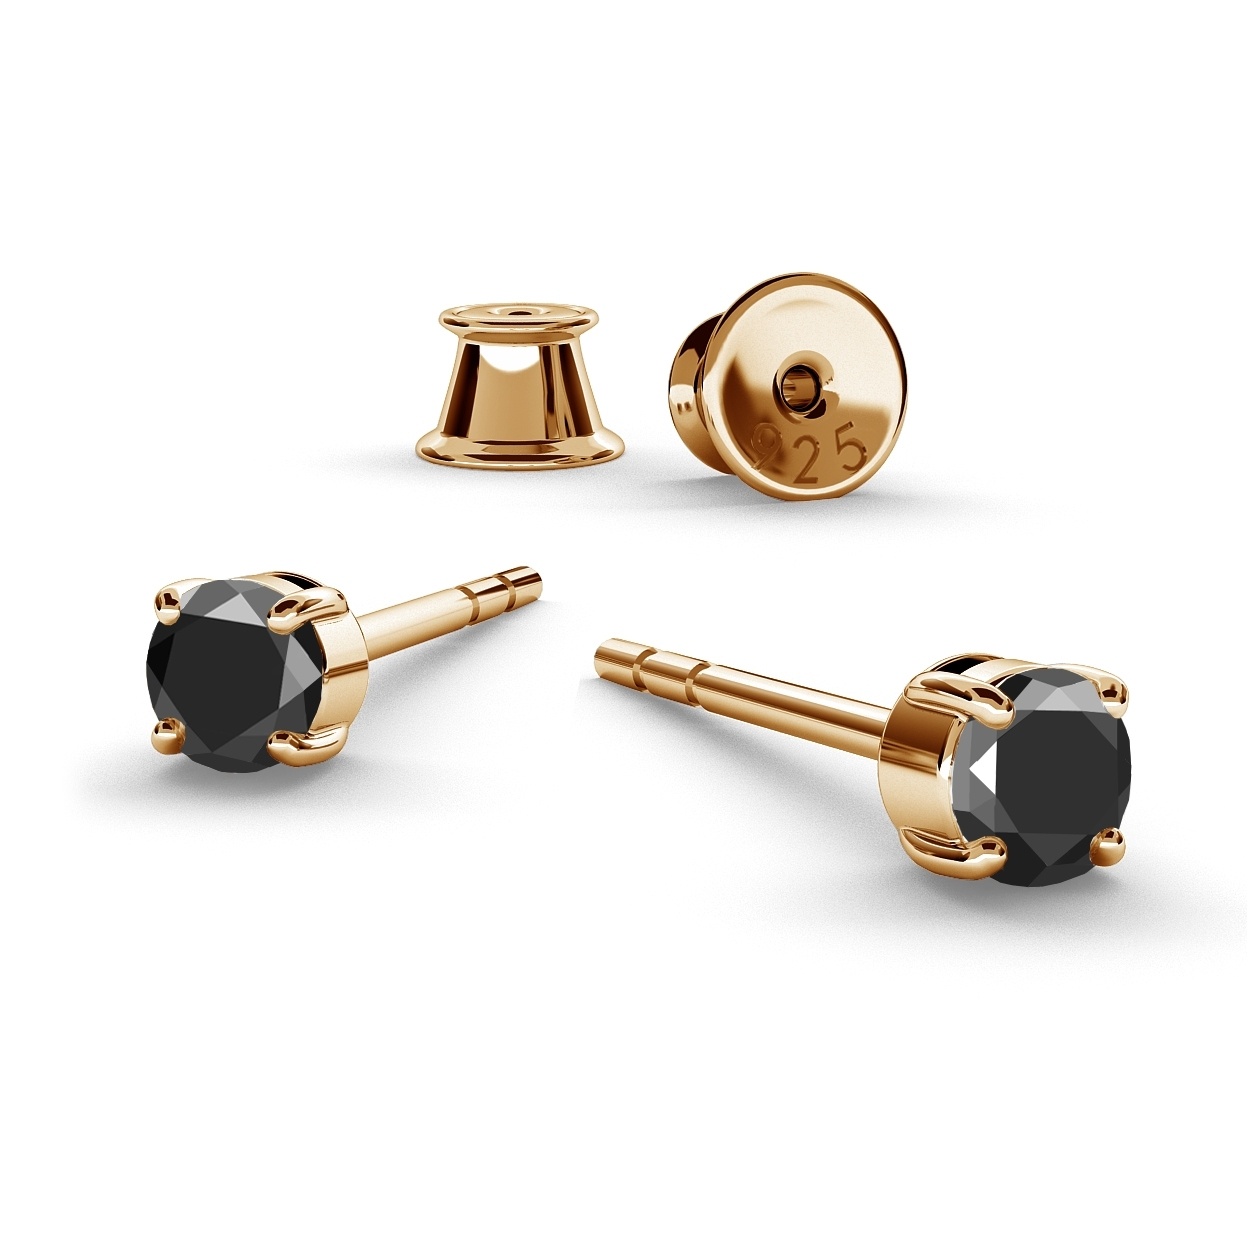 3MM BLACK DIAMOND EARRINGS 0.22K, RHODIUM OR GOLD PLATED